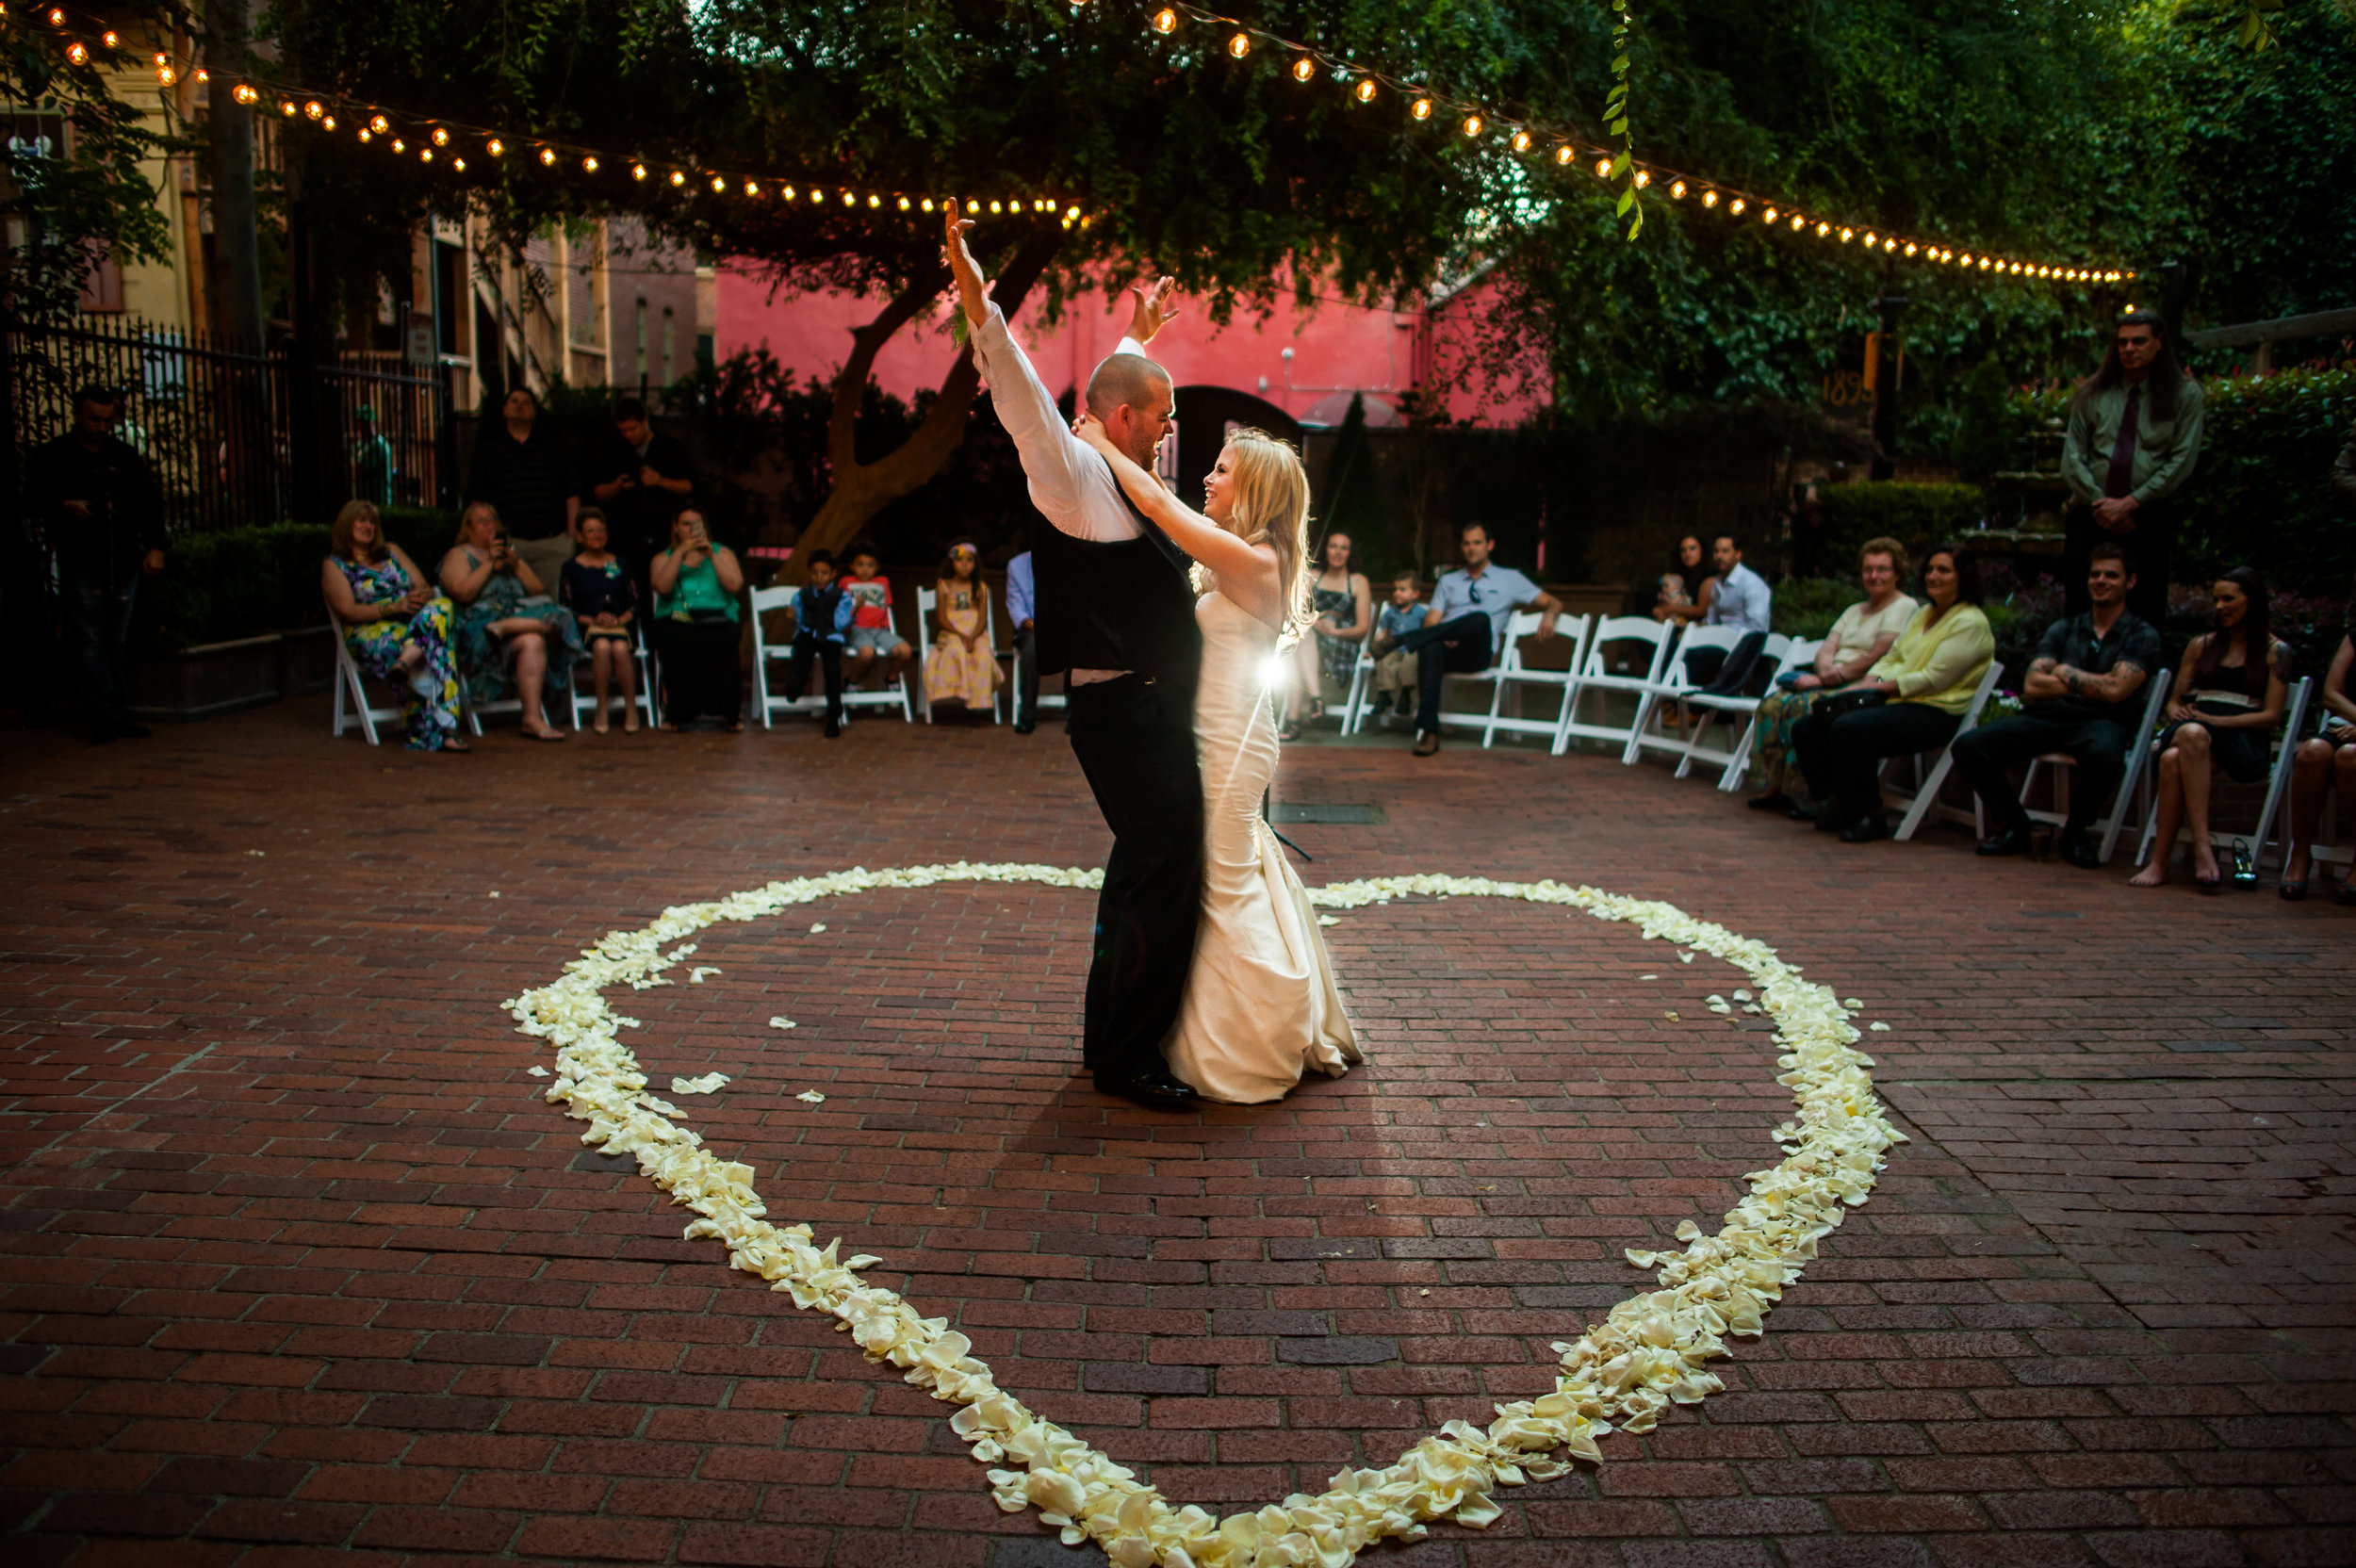 jenelle-brian-001-courtyard-d'oro-old-sacramento-wedding-photographer-katherine-nicole-photography037.JPG